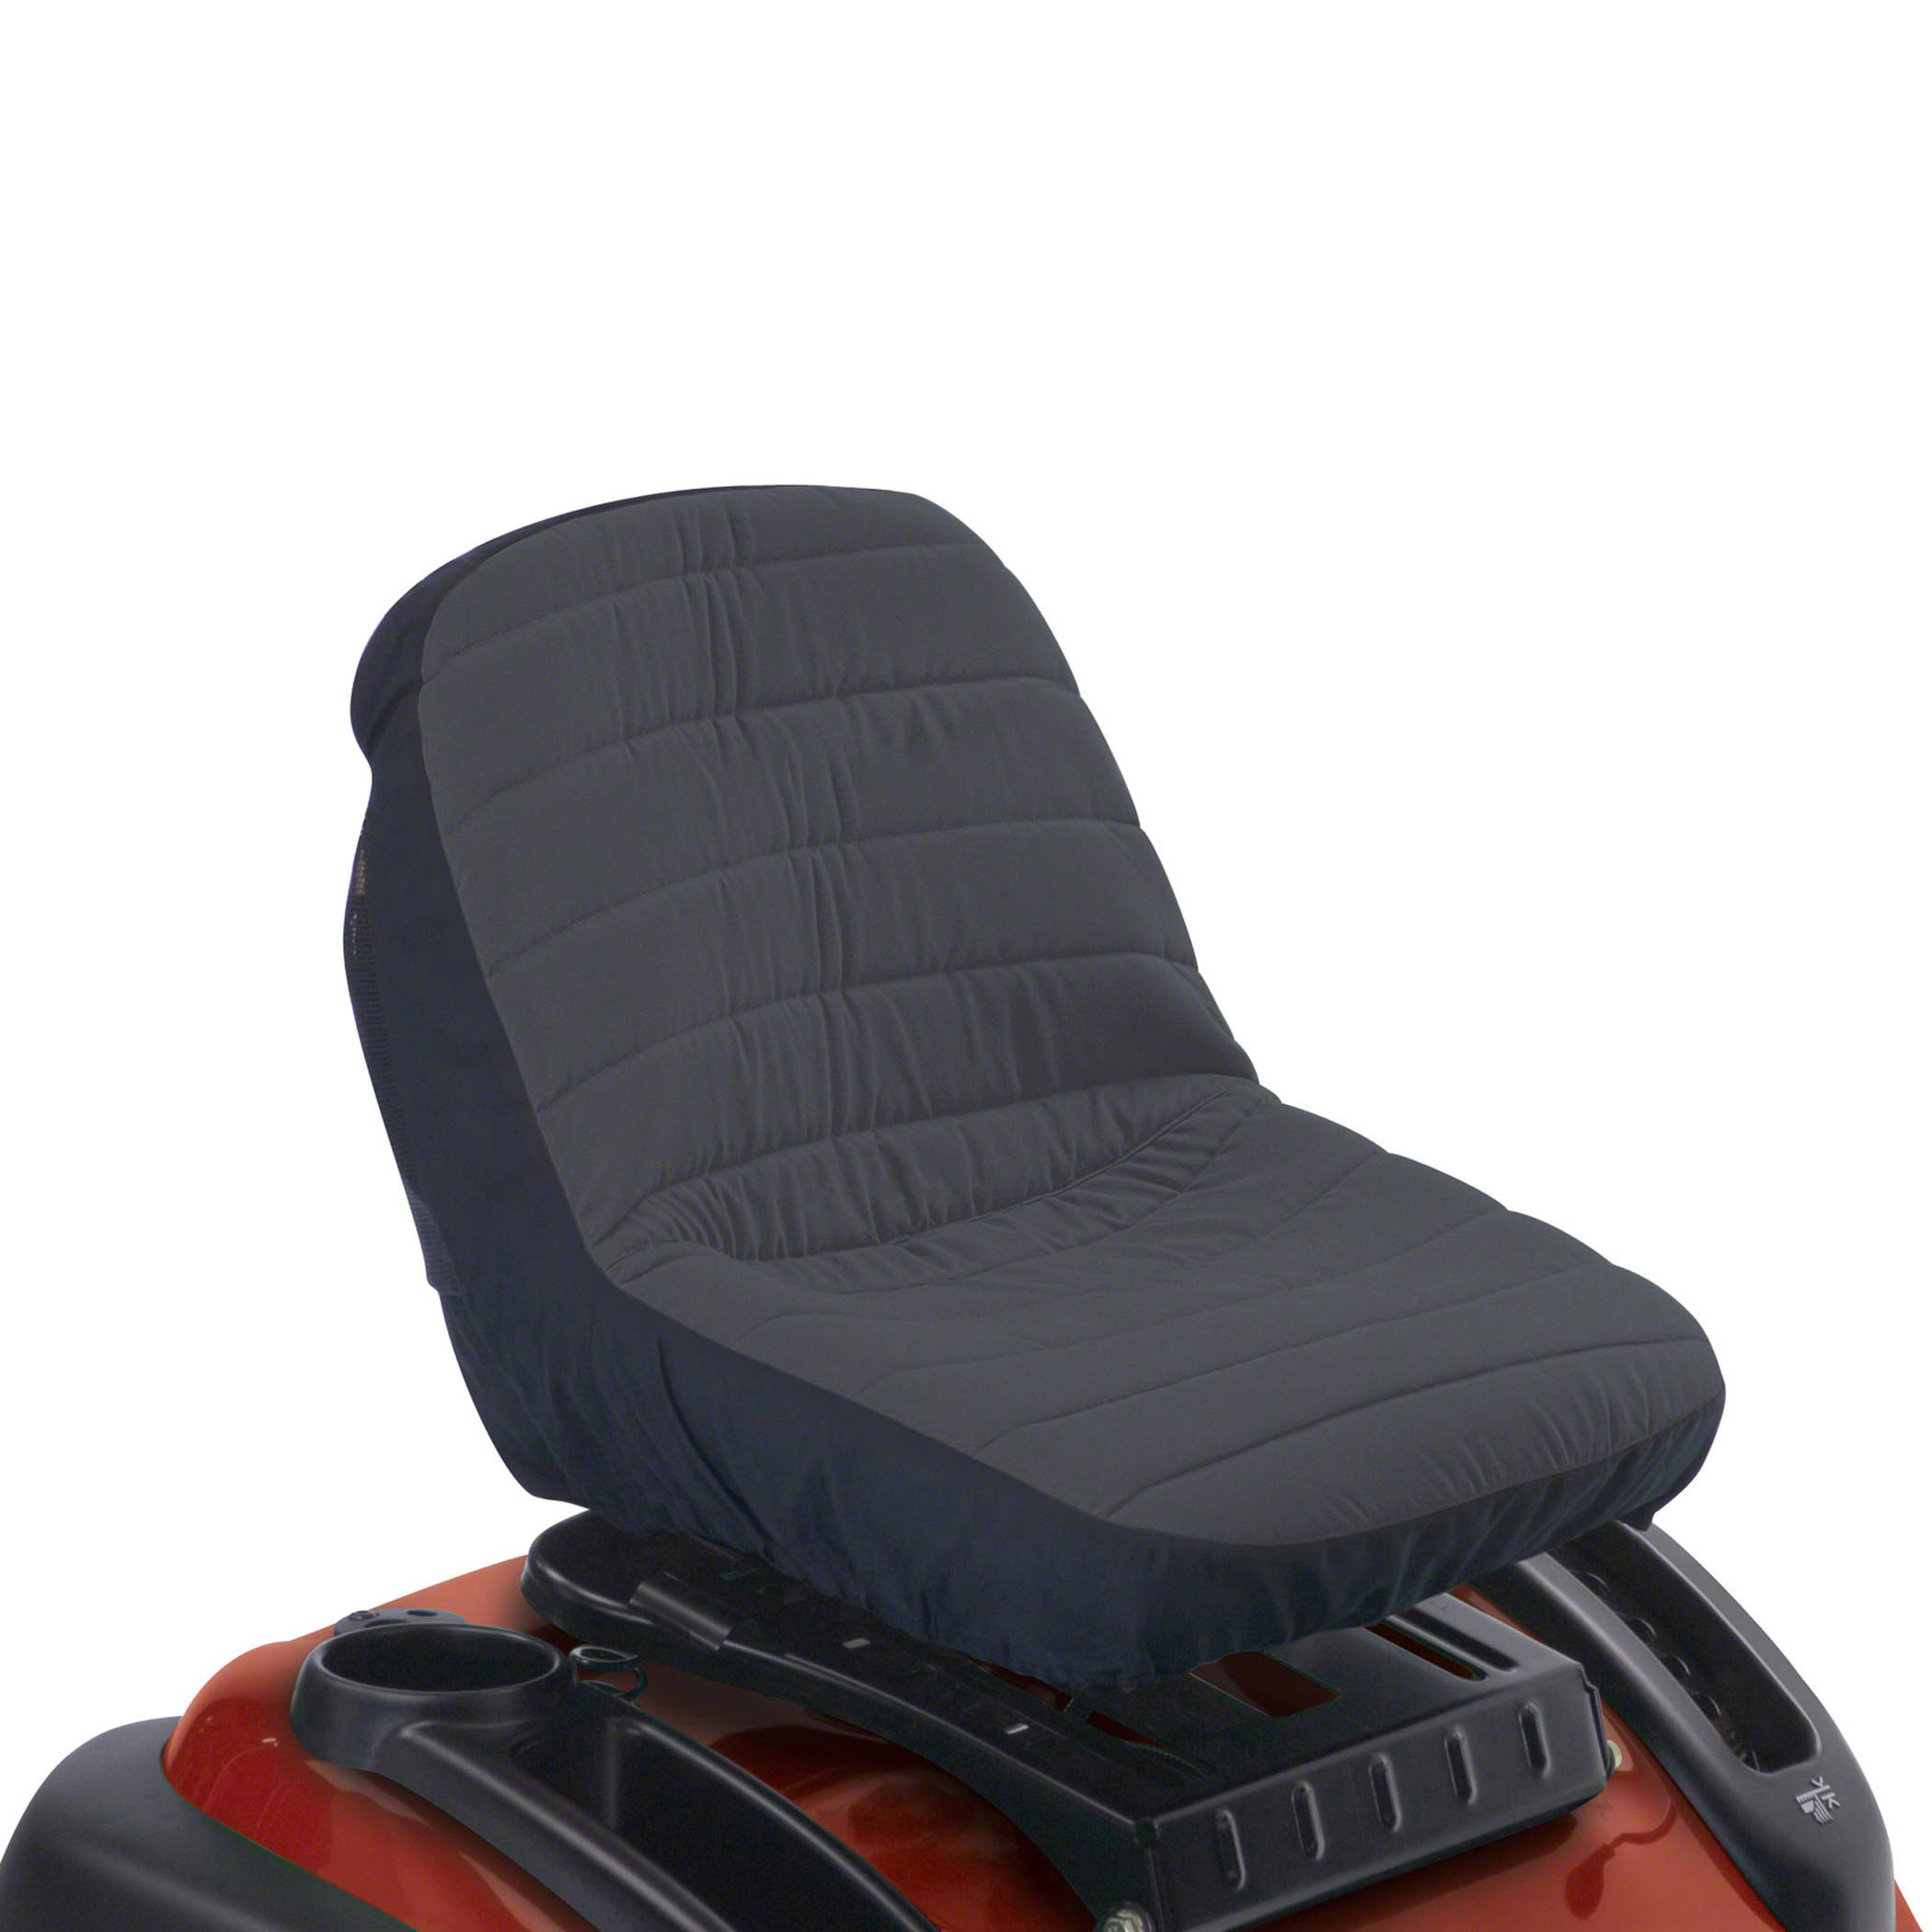 Classic Accessories Deluxe Riding Lawn Mower Seat Cover, Small by Classic Accessories